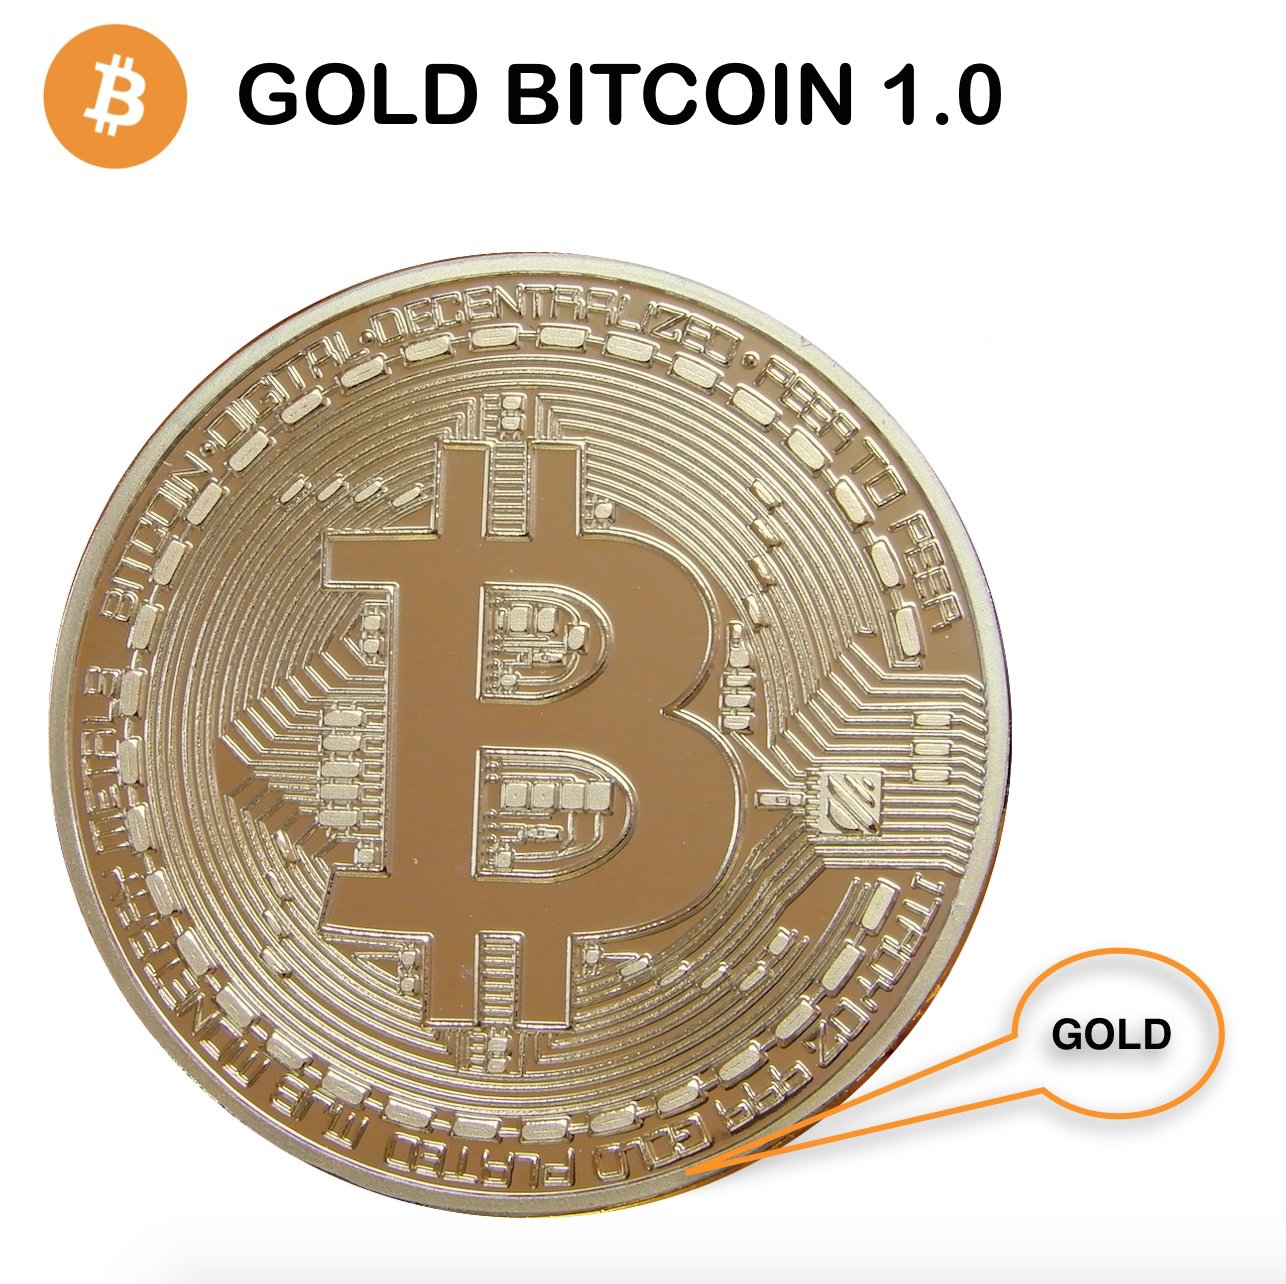 Fine Gold Bitcoin Commemorative Round Collectors Coin Bit Coin is Gold Plated